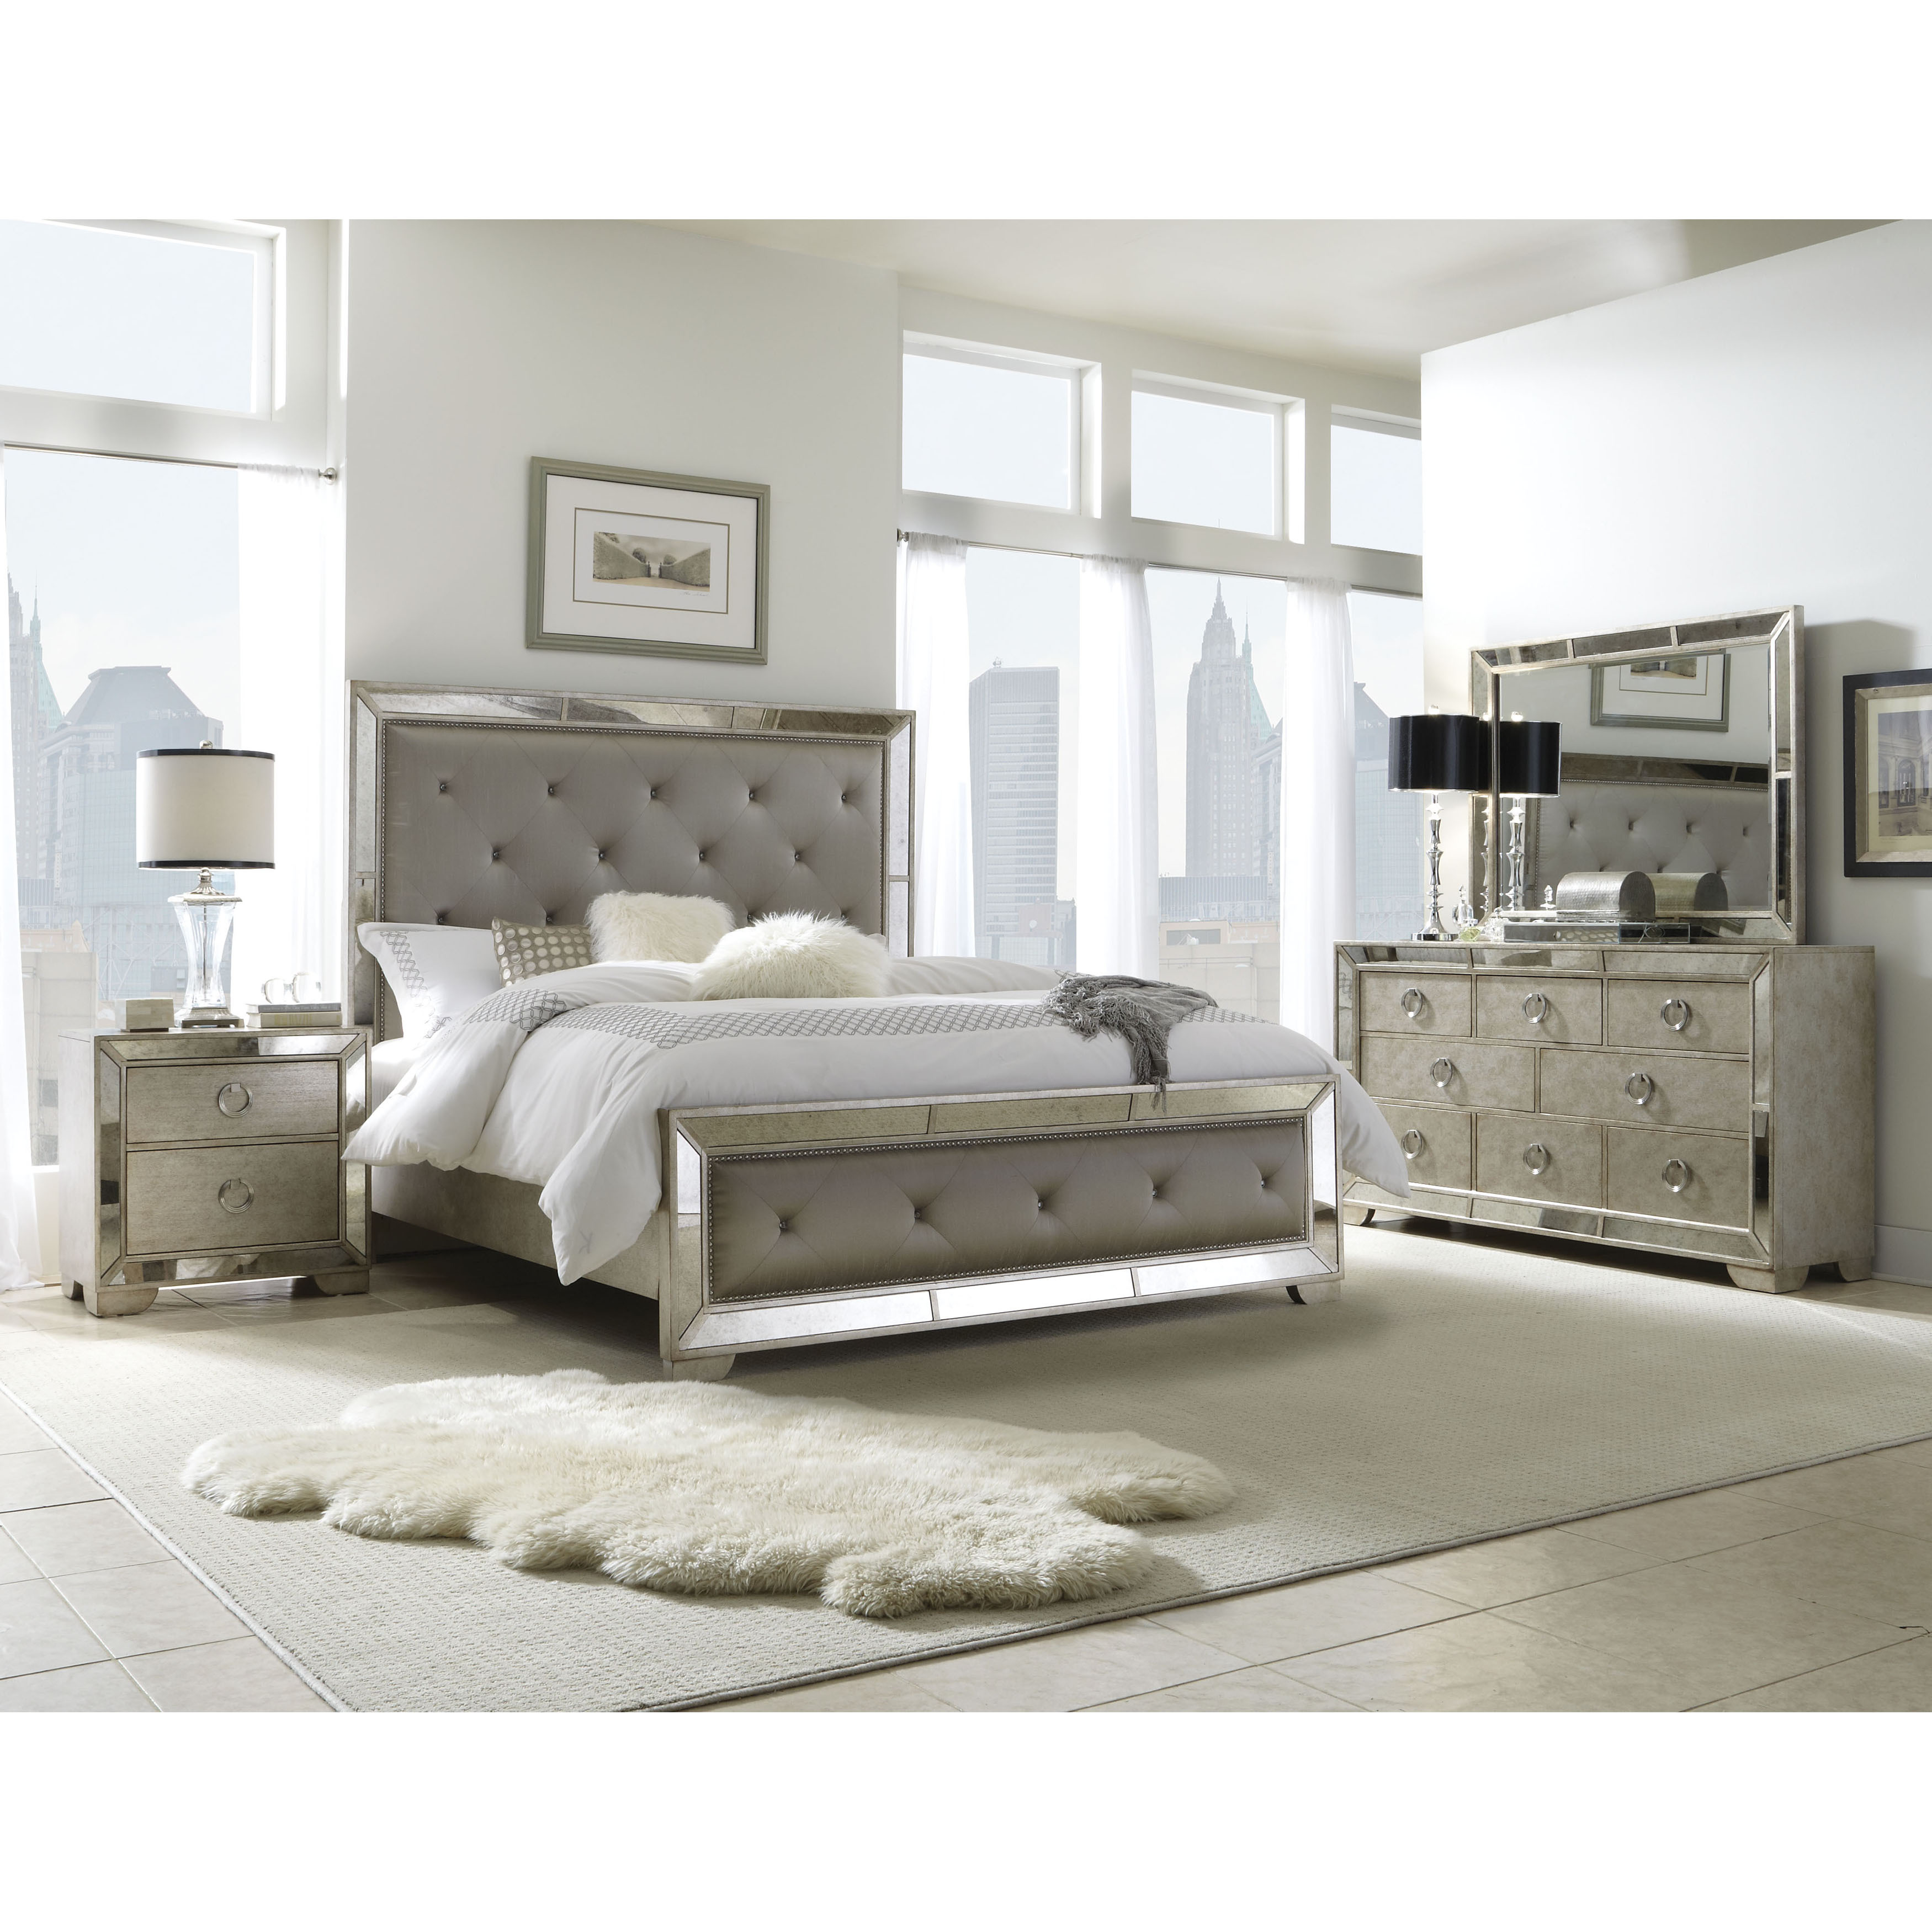 mirrored bedroom furniture set photo - 4